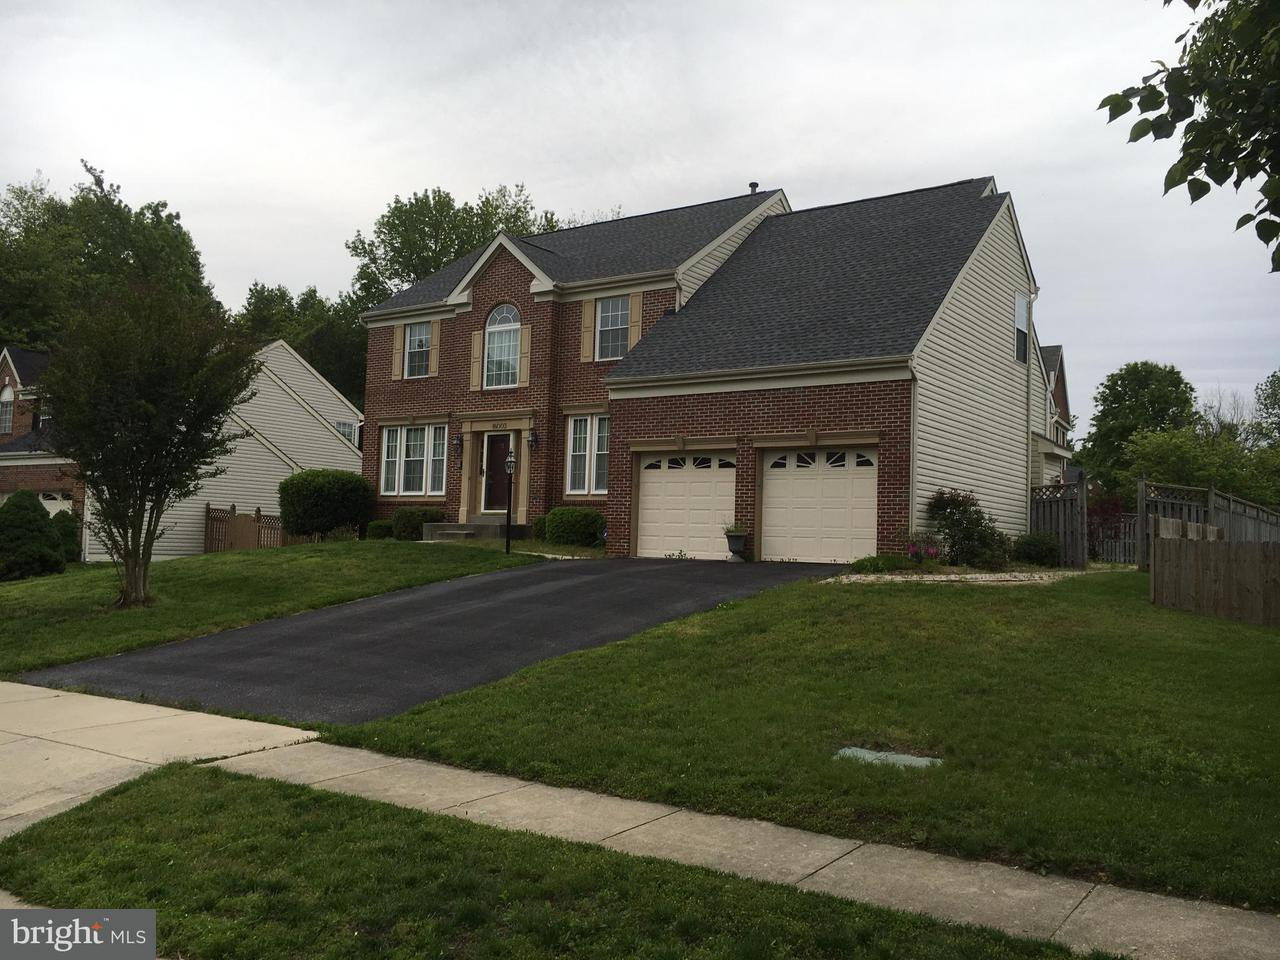 Single Family Home for Sale at 16003 ATLANTIS Drive 16003 ATLANTIS Drive Bowie, Maryland 20716 United States